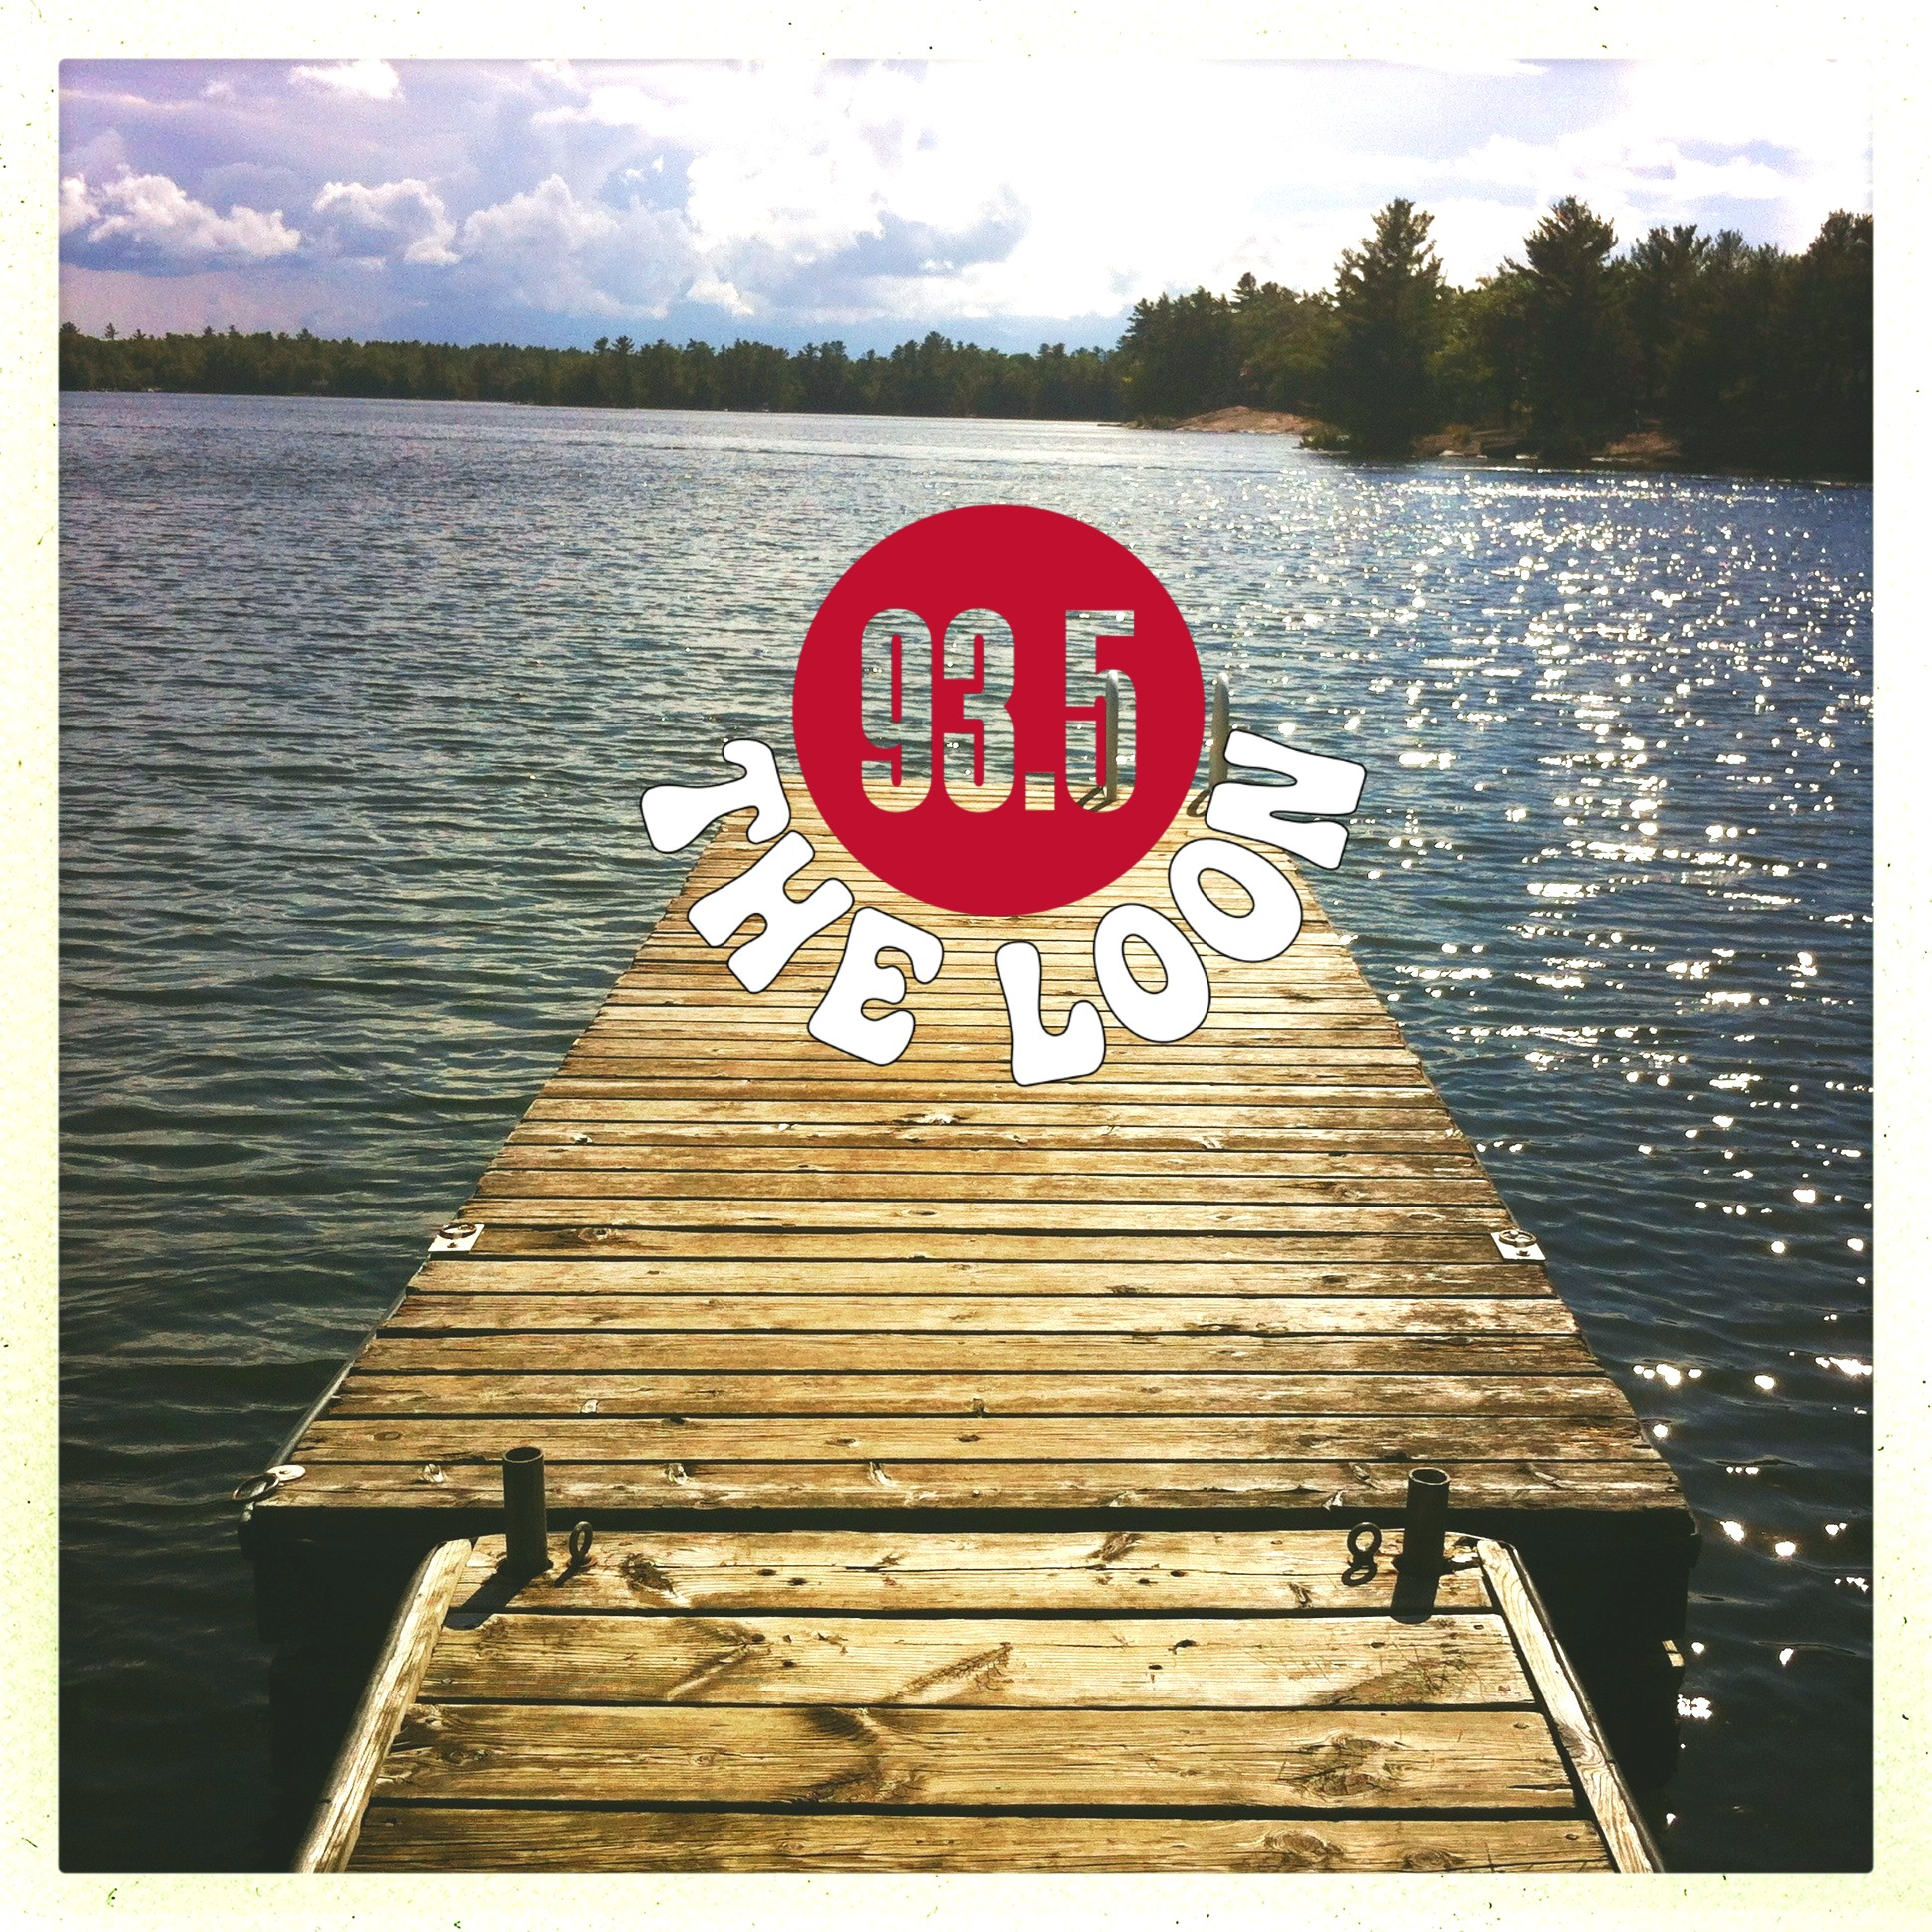 Dock stretching out into a gleaming lake with The 93.5 Loon logo in the horizon. There are trees in the distance